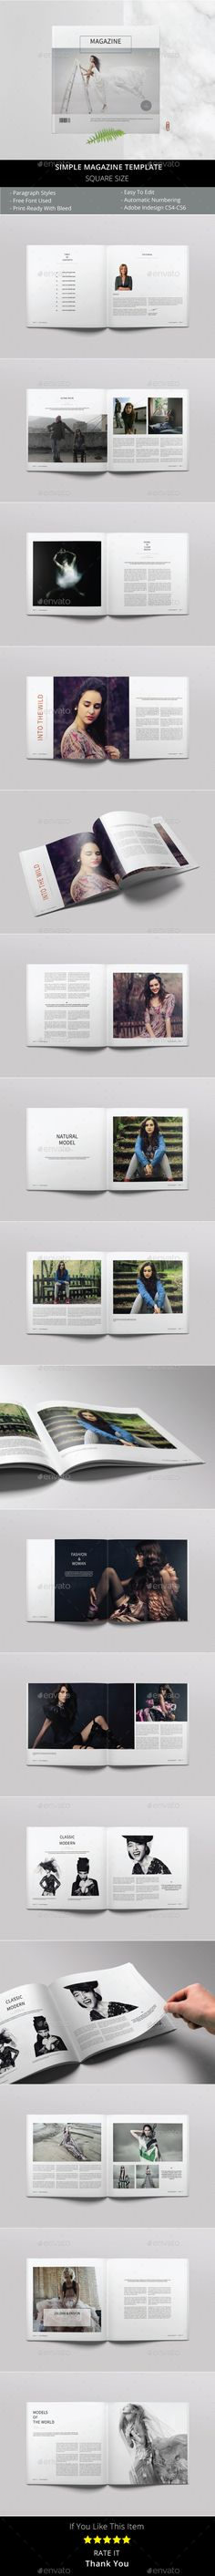 Square Simple Magazine Professional and clean InDesign magazine template that can be used for any type of industry. You can easily edit the text and color. This item consist of 30 pages that fully editable and customizeable. FEATURES : Features :MULTIPURPOSE 30 Pages Square Size Easy to add more pag